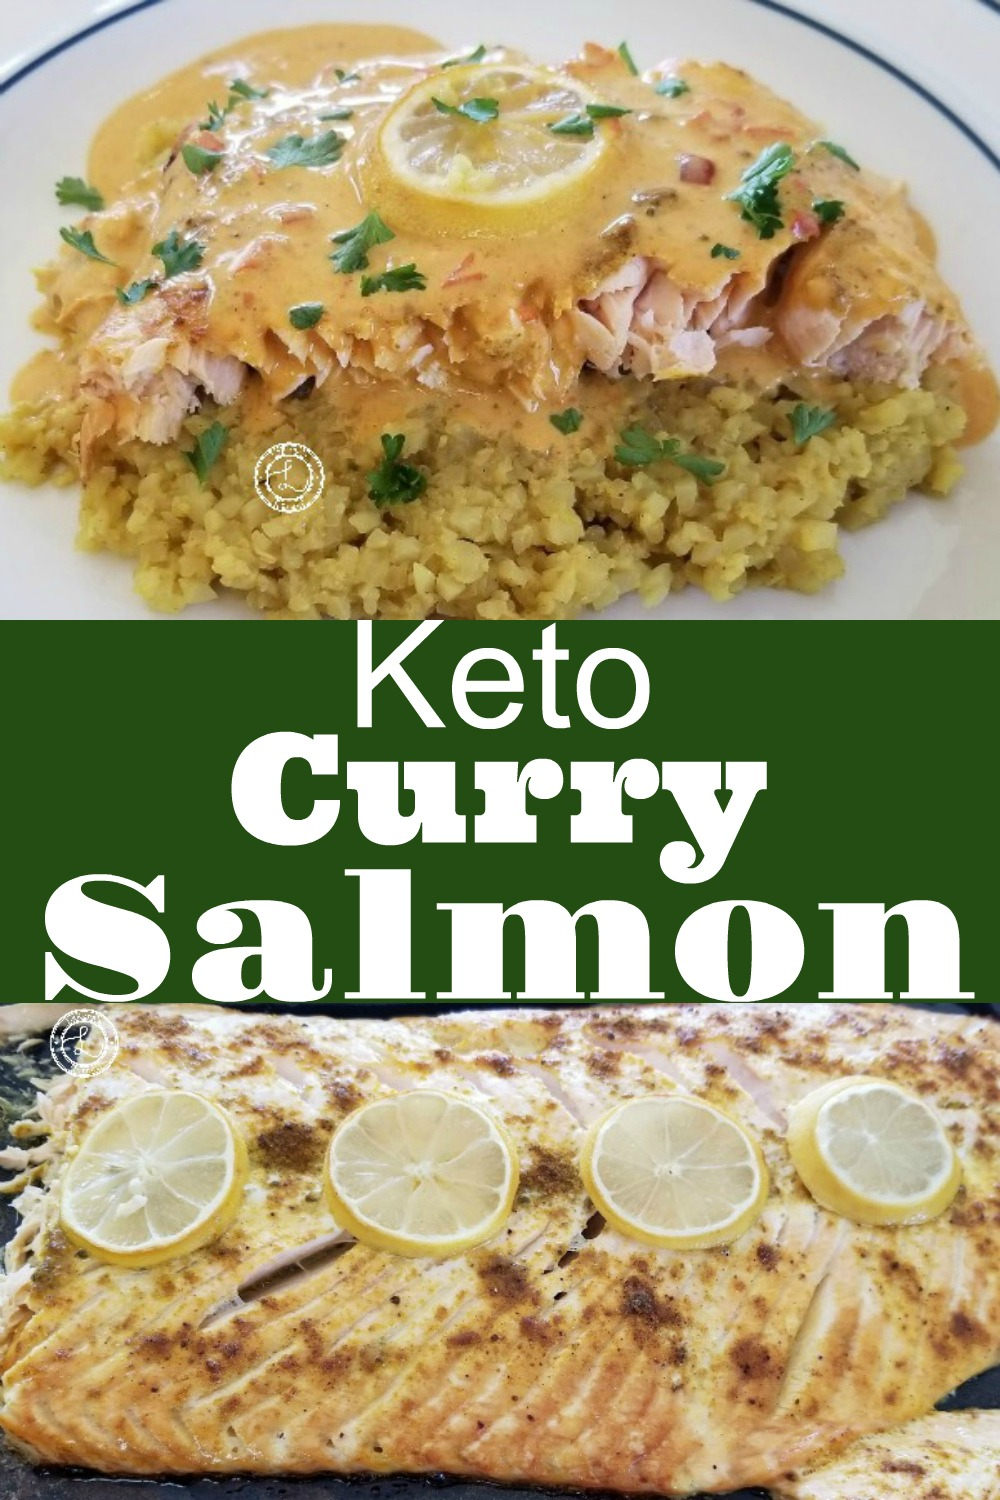 2 Pictures. One of the salmon with spices and lemon slice cooked. One with a slice of curry on curry cauliflower rice with curry sauce and a slice of lemon.